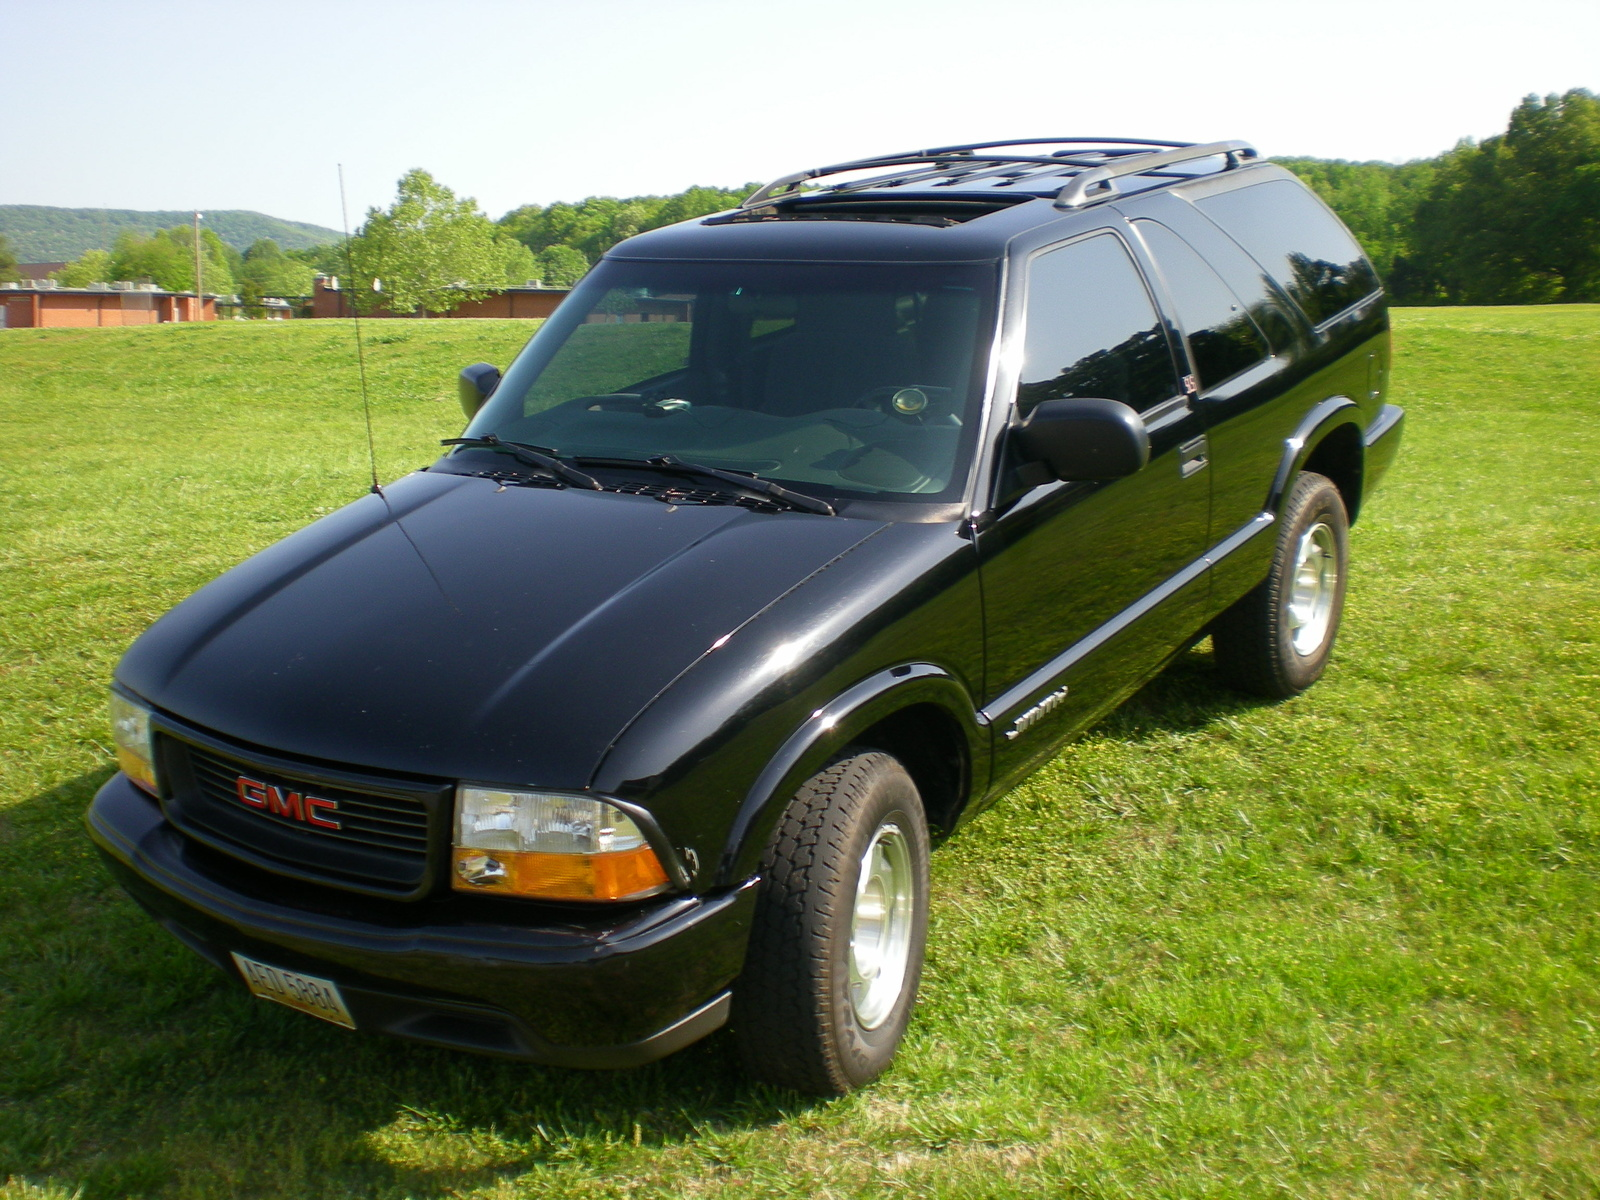 2001 Gmc Jimmy Overview Cargurus